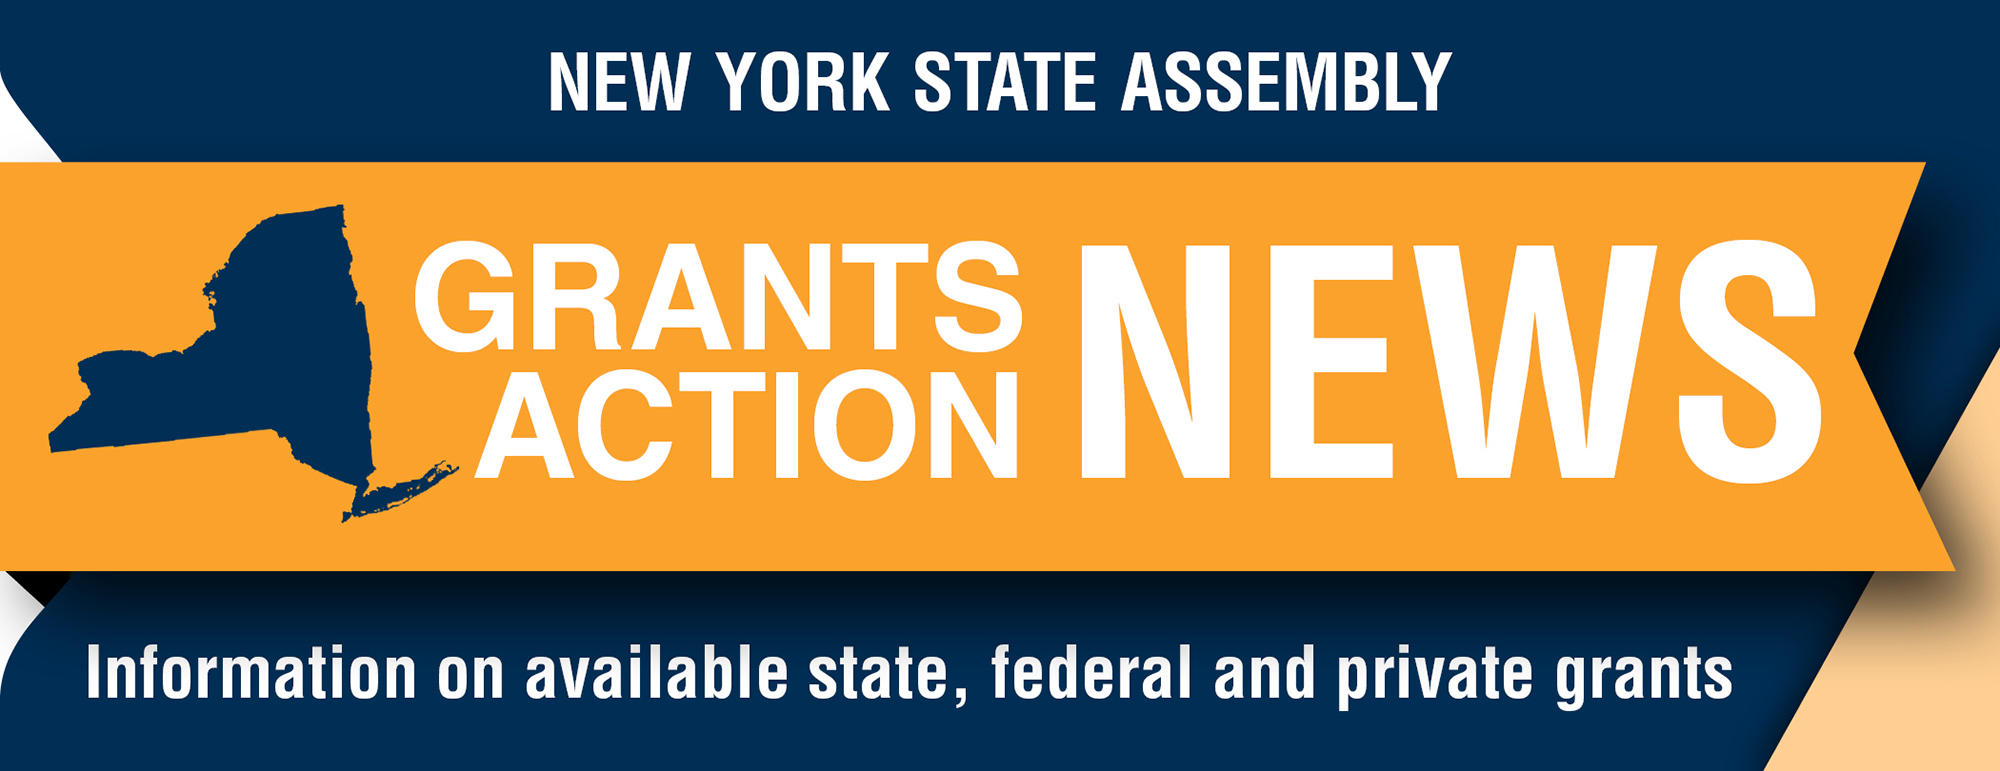 Grants Action News - Blue/Orange Large Size 2000x771